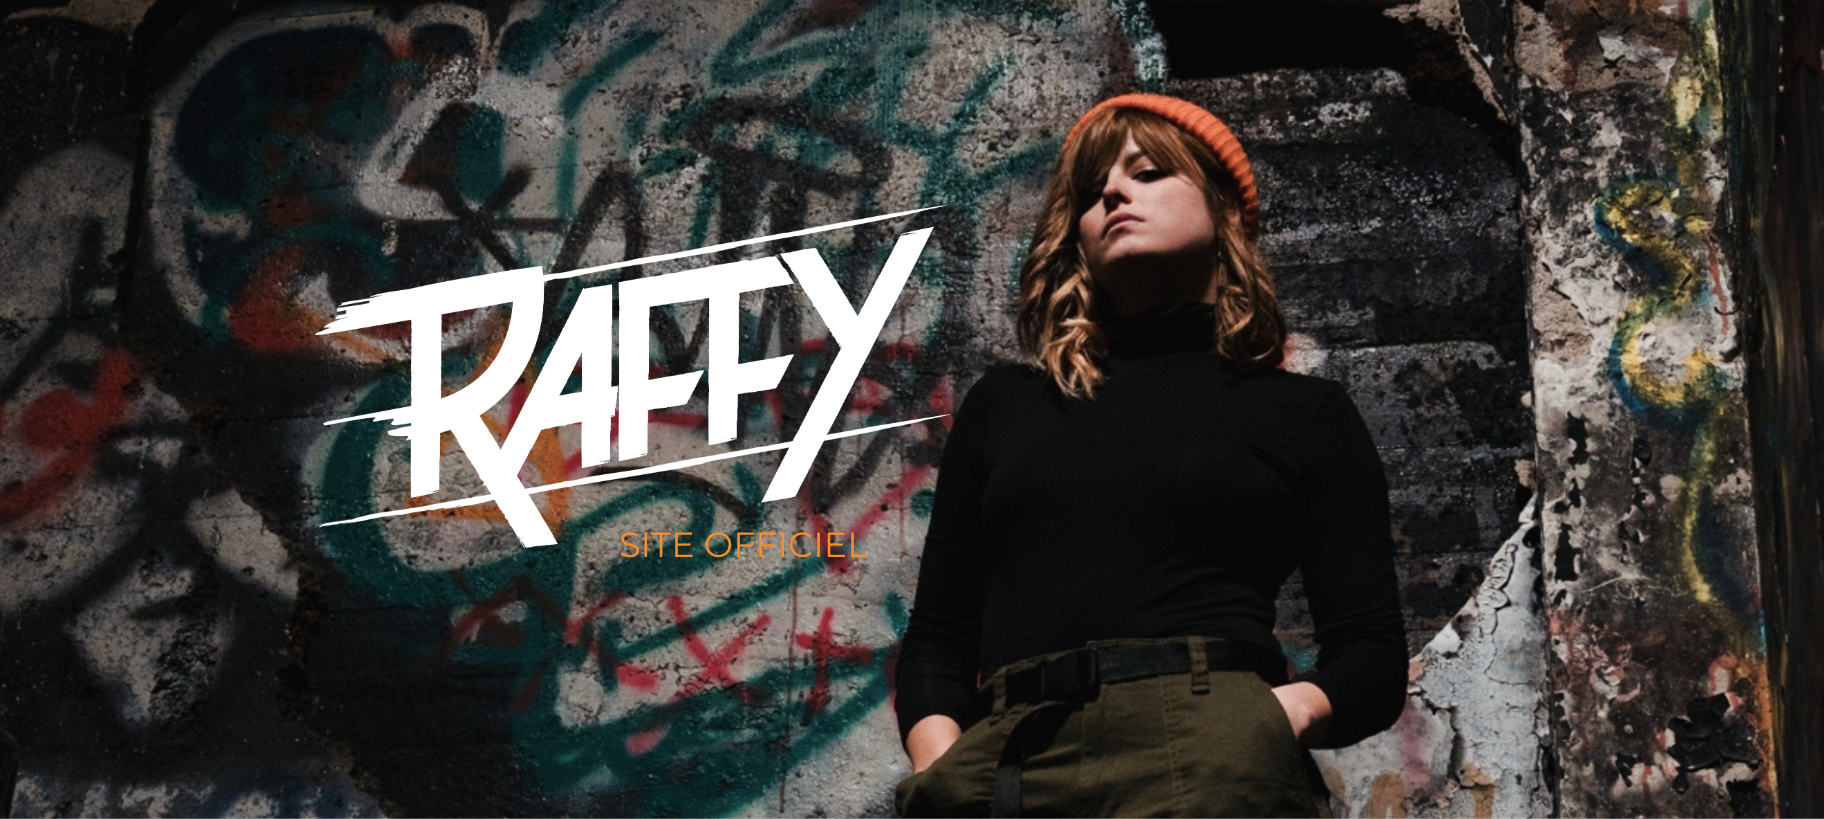 groupe raffy site web officiel